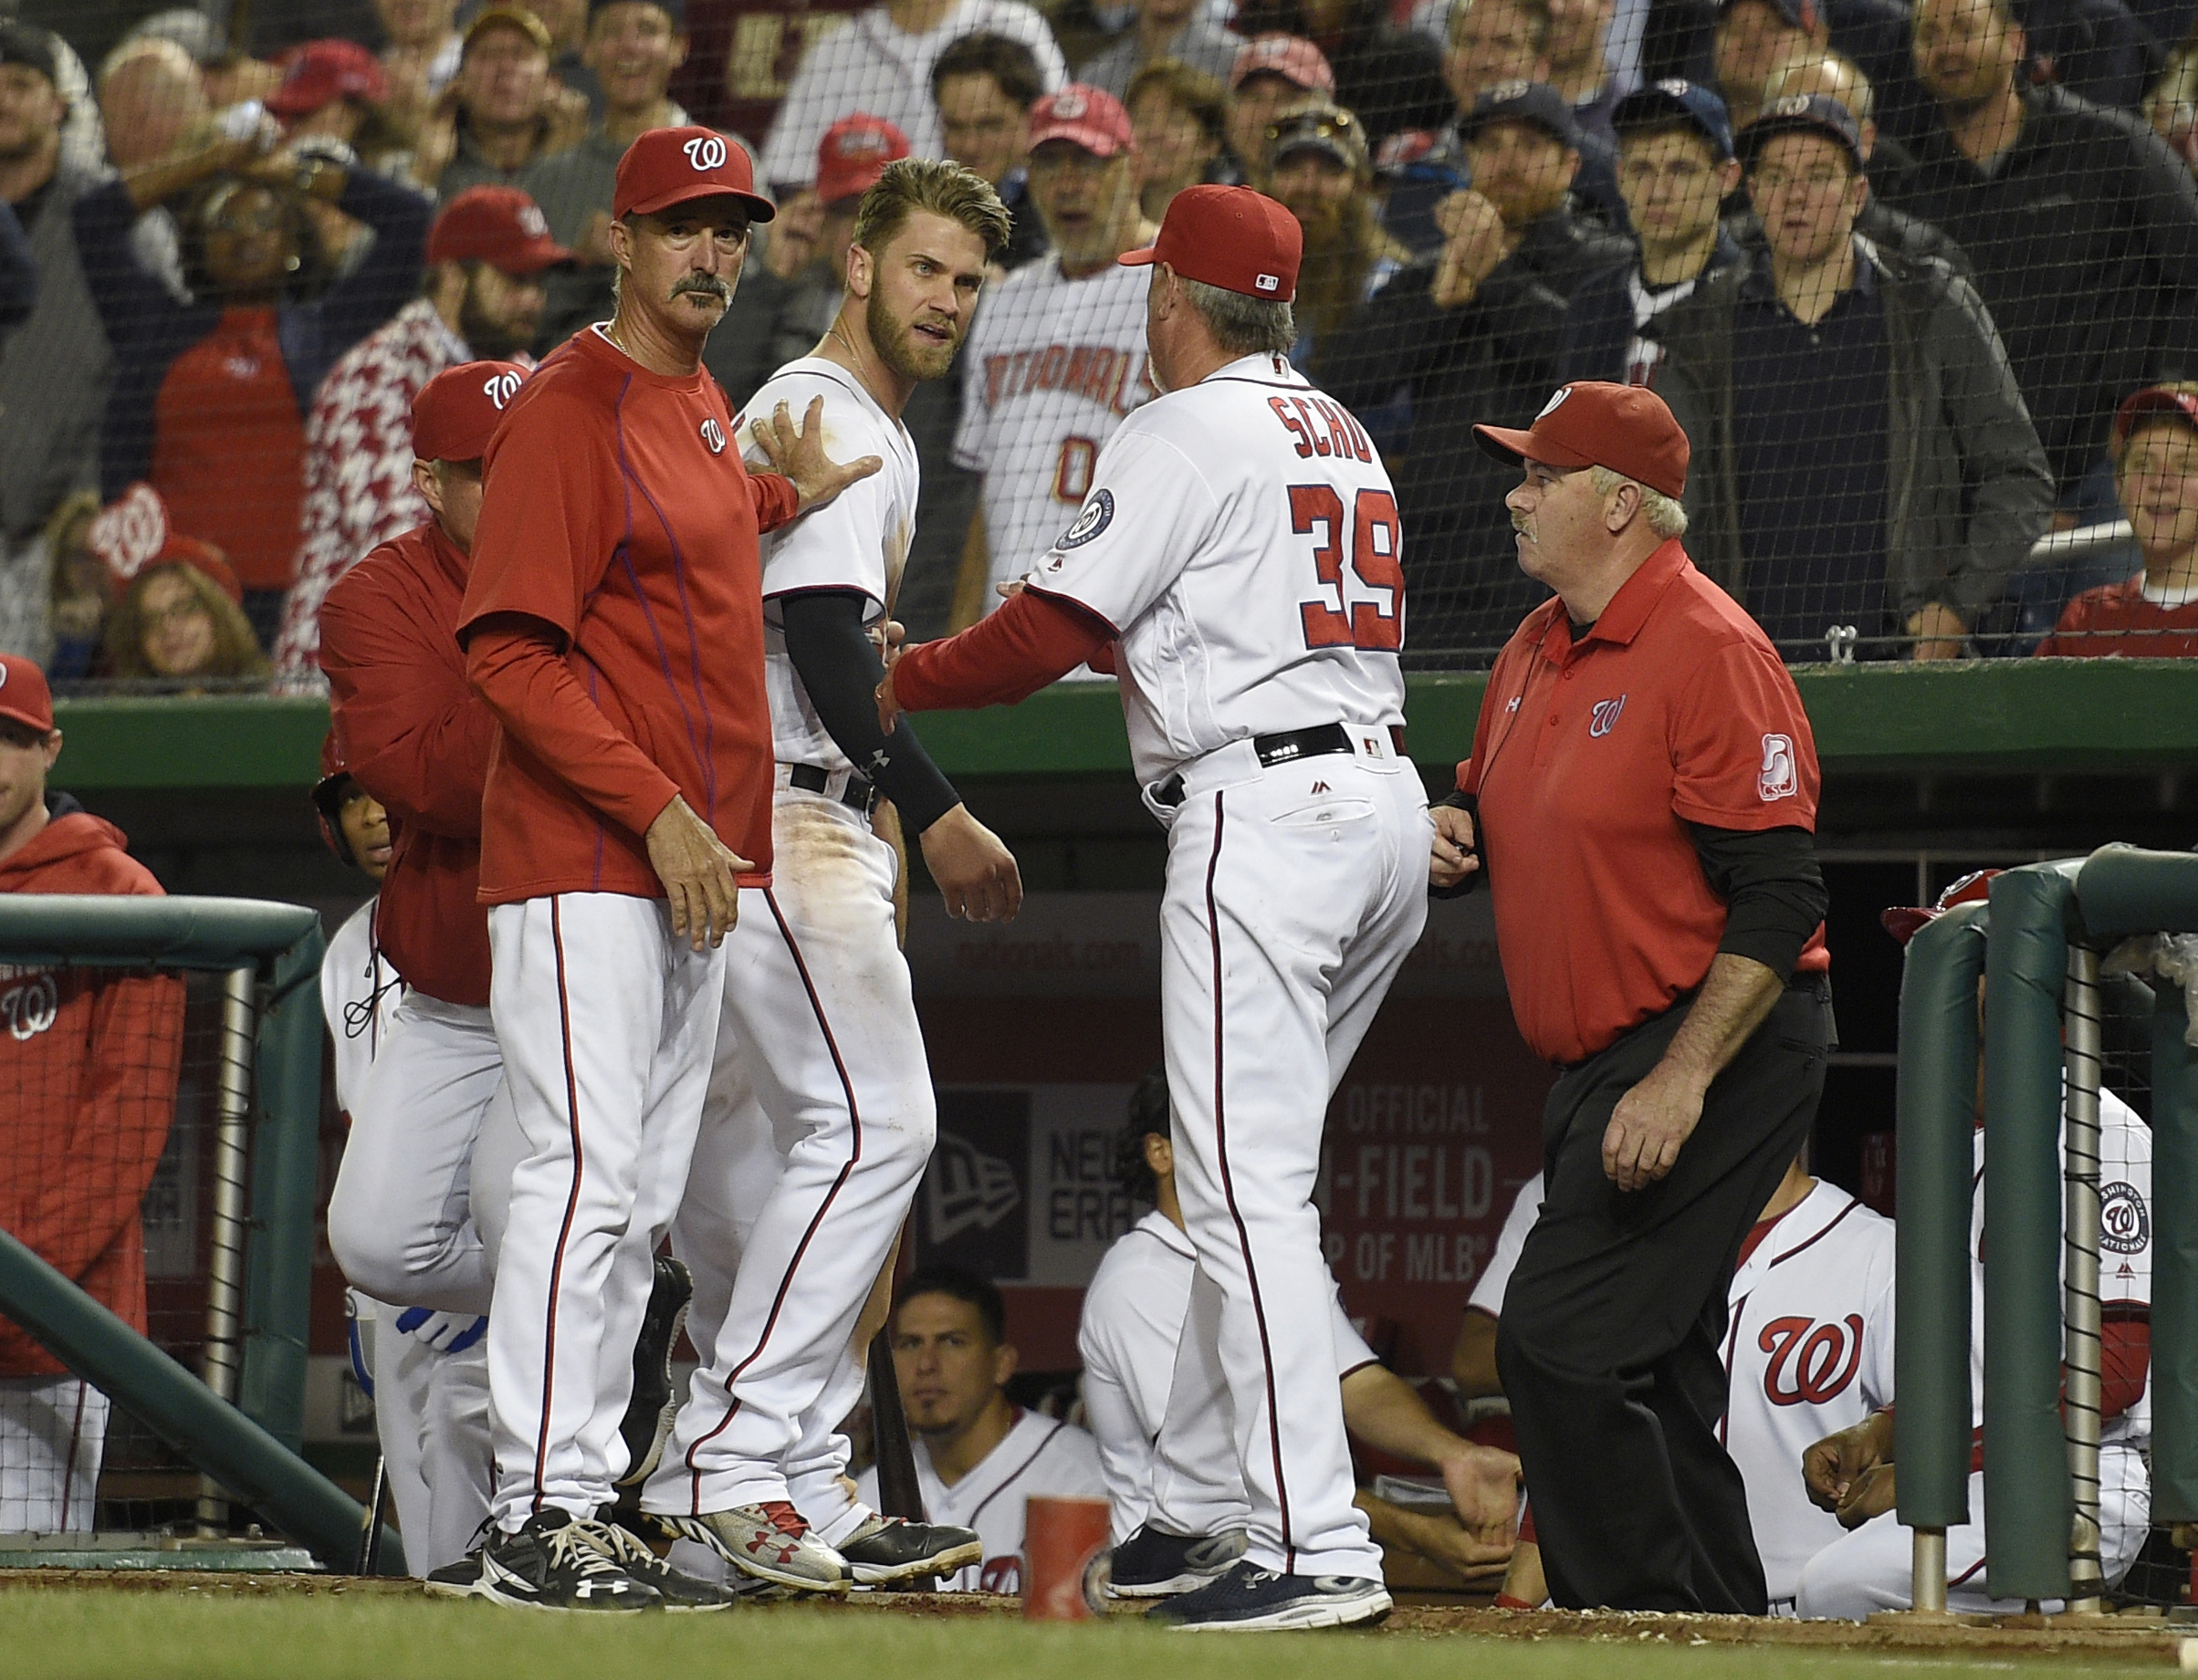 FILE - In this May 9, 2016 file photo, Washington Nationals' Bryce Harper, center, is restrained by pitching coach Mike Maddux, left, and hitting coach Rick Schu (39) after Harper was ejected in the dugout during the ninth inning of an interleague basebal